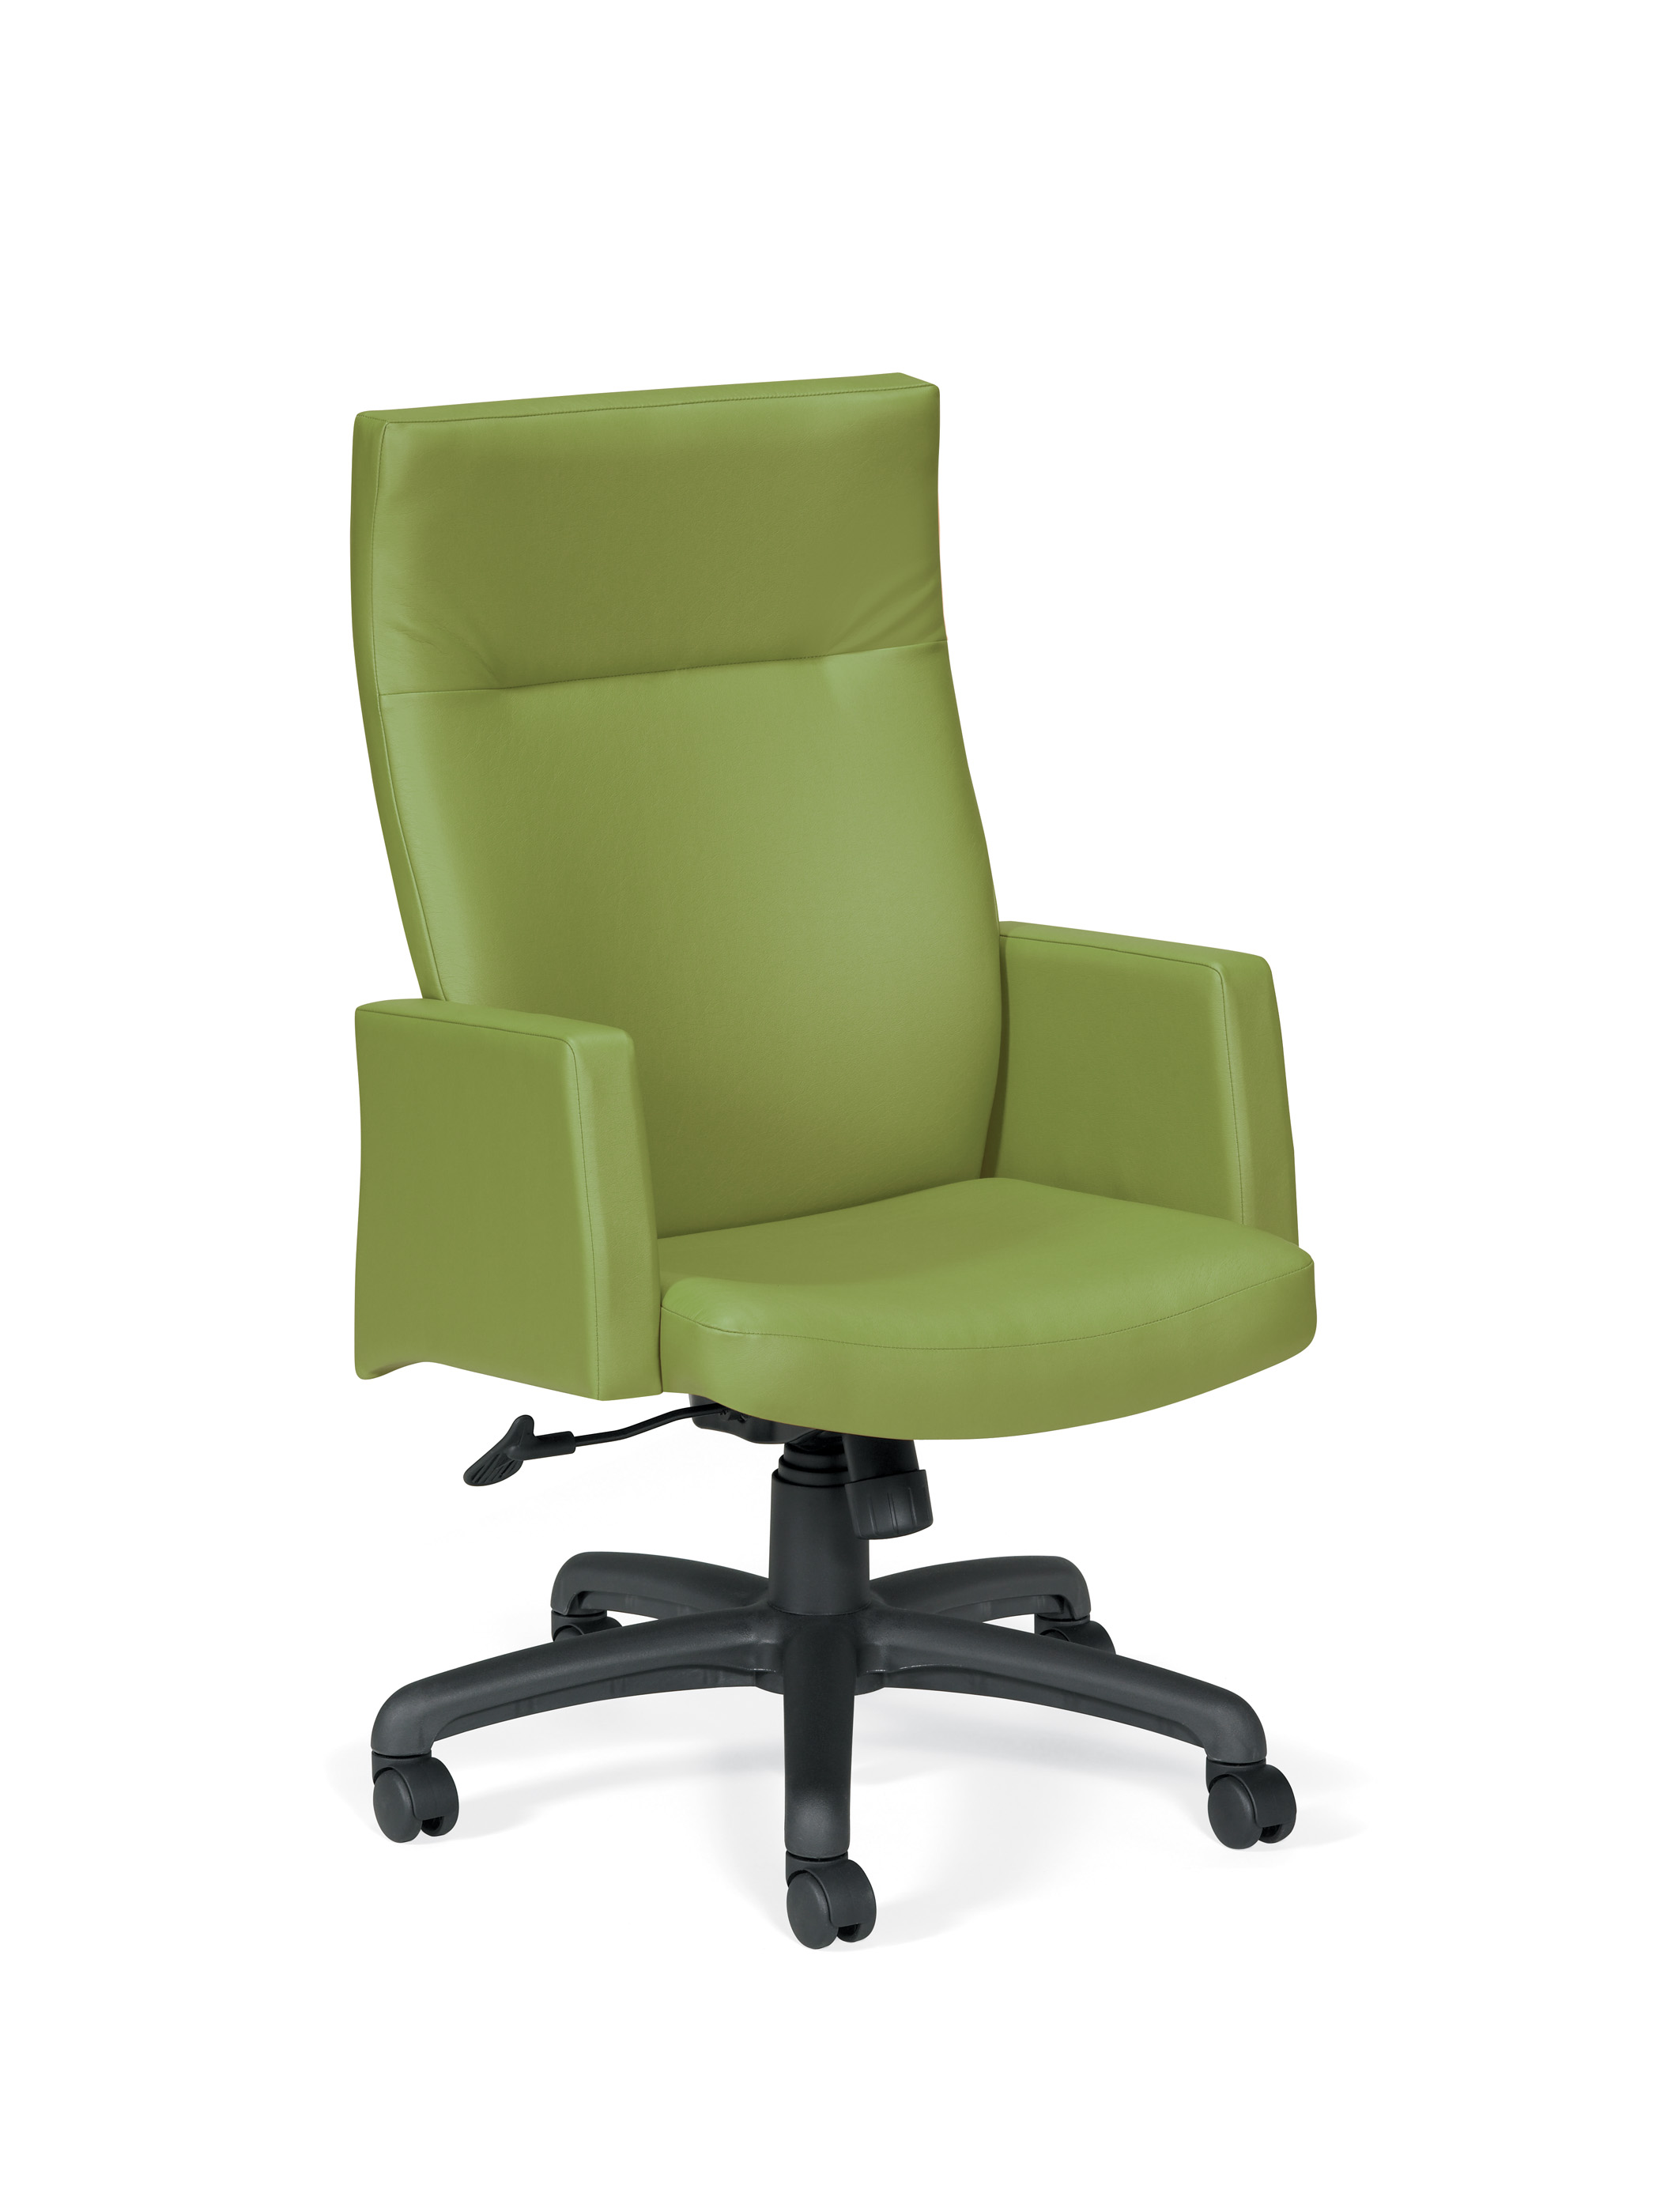 High back fabric office chair - Paoli Salano Office Chair